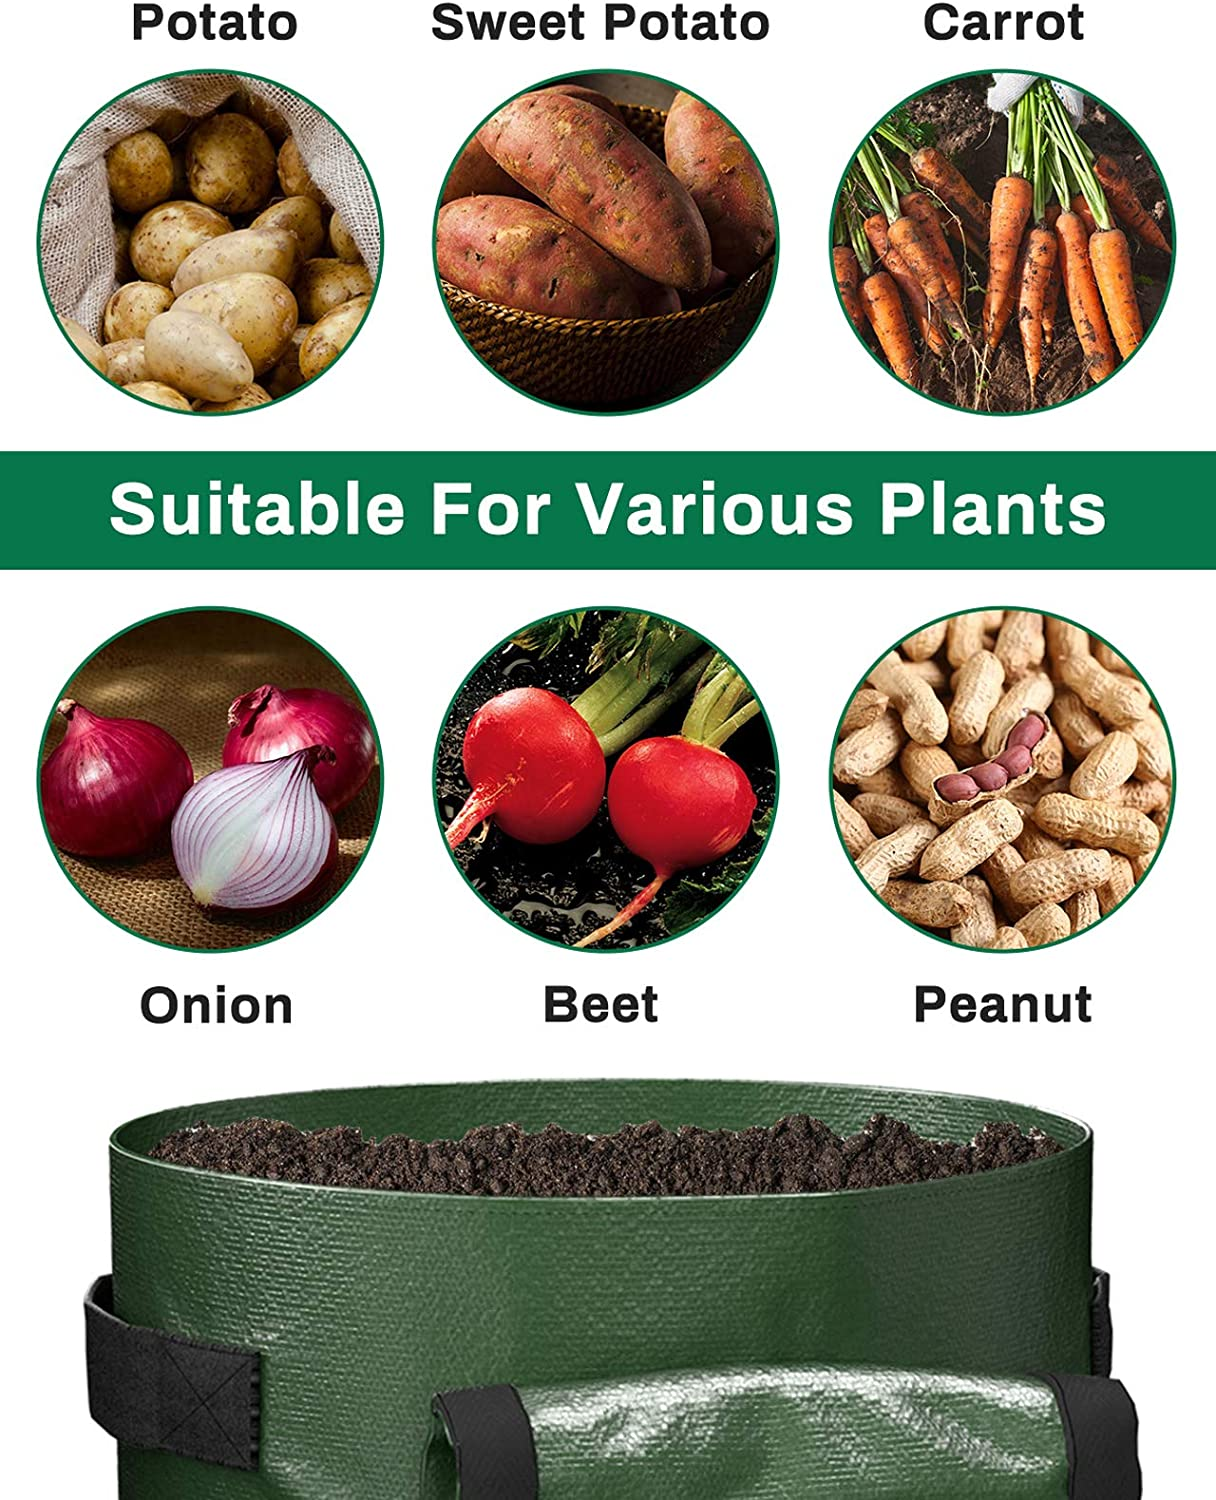 Heavy Duty Nonwoven Potato Pots with 2 Flaps /& Handles Decorlife Potato Bags 6 Pack 7 GA Easy to Harvest and Move